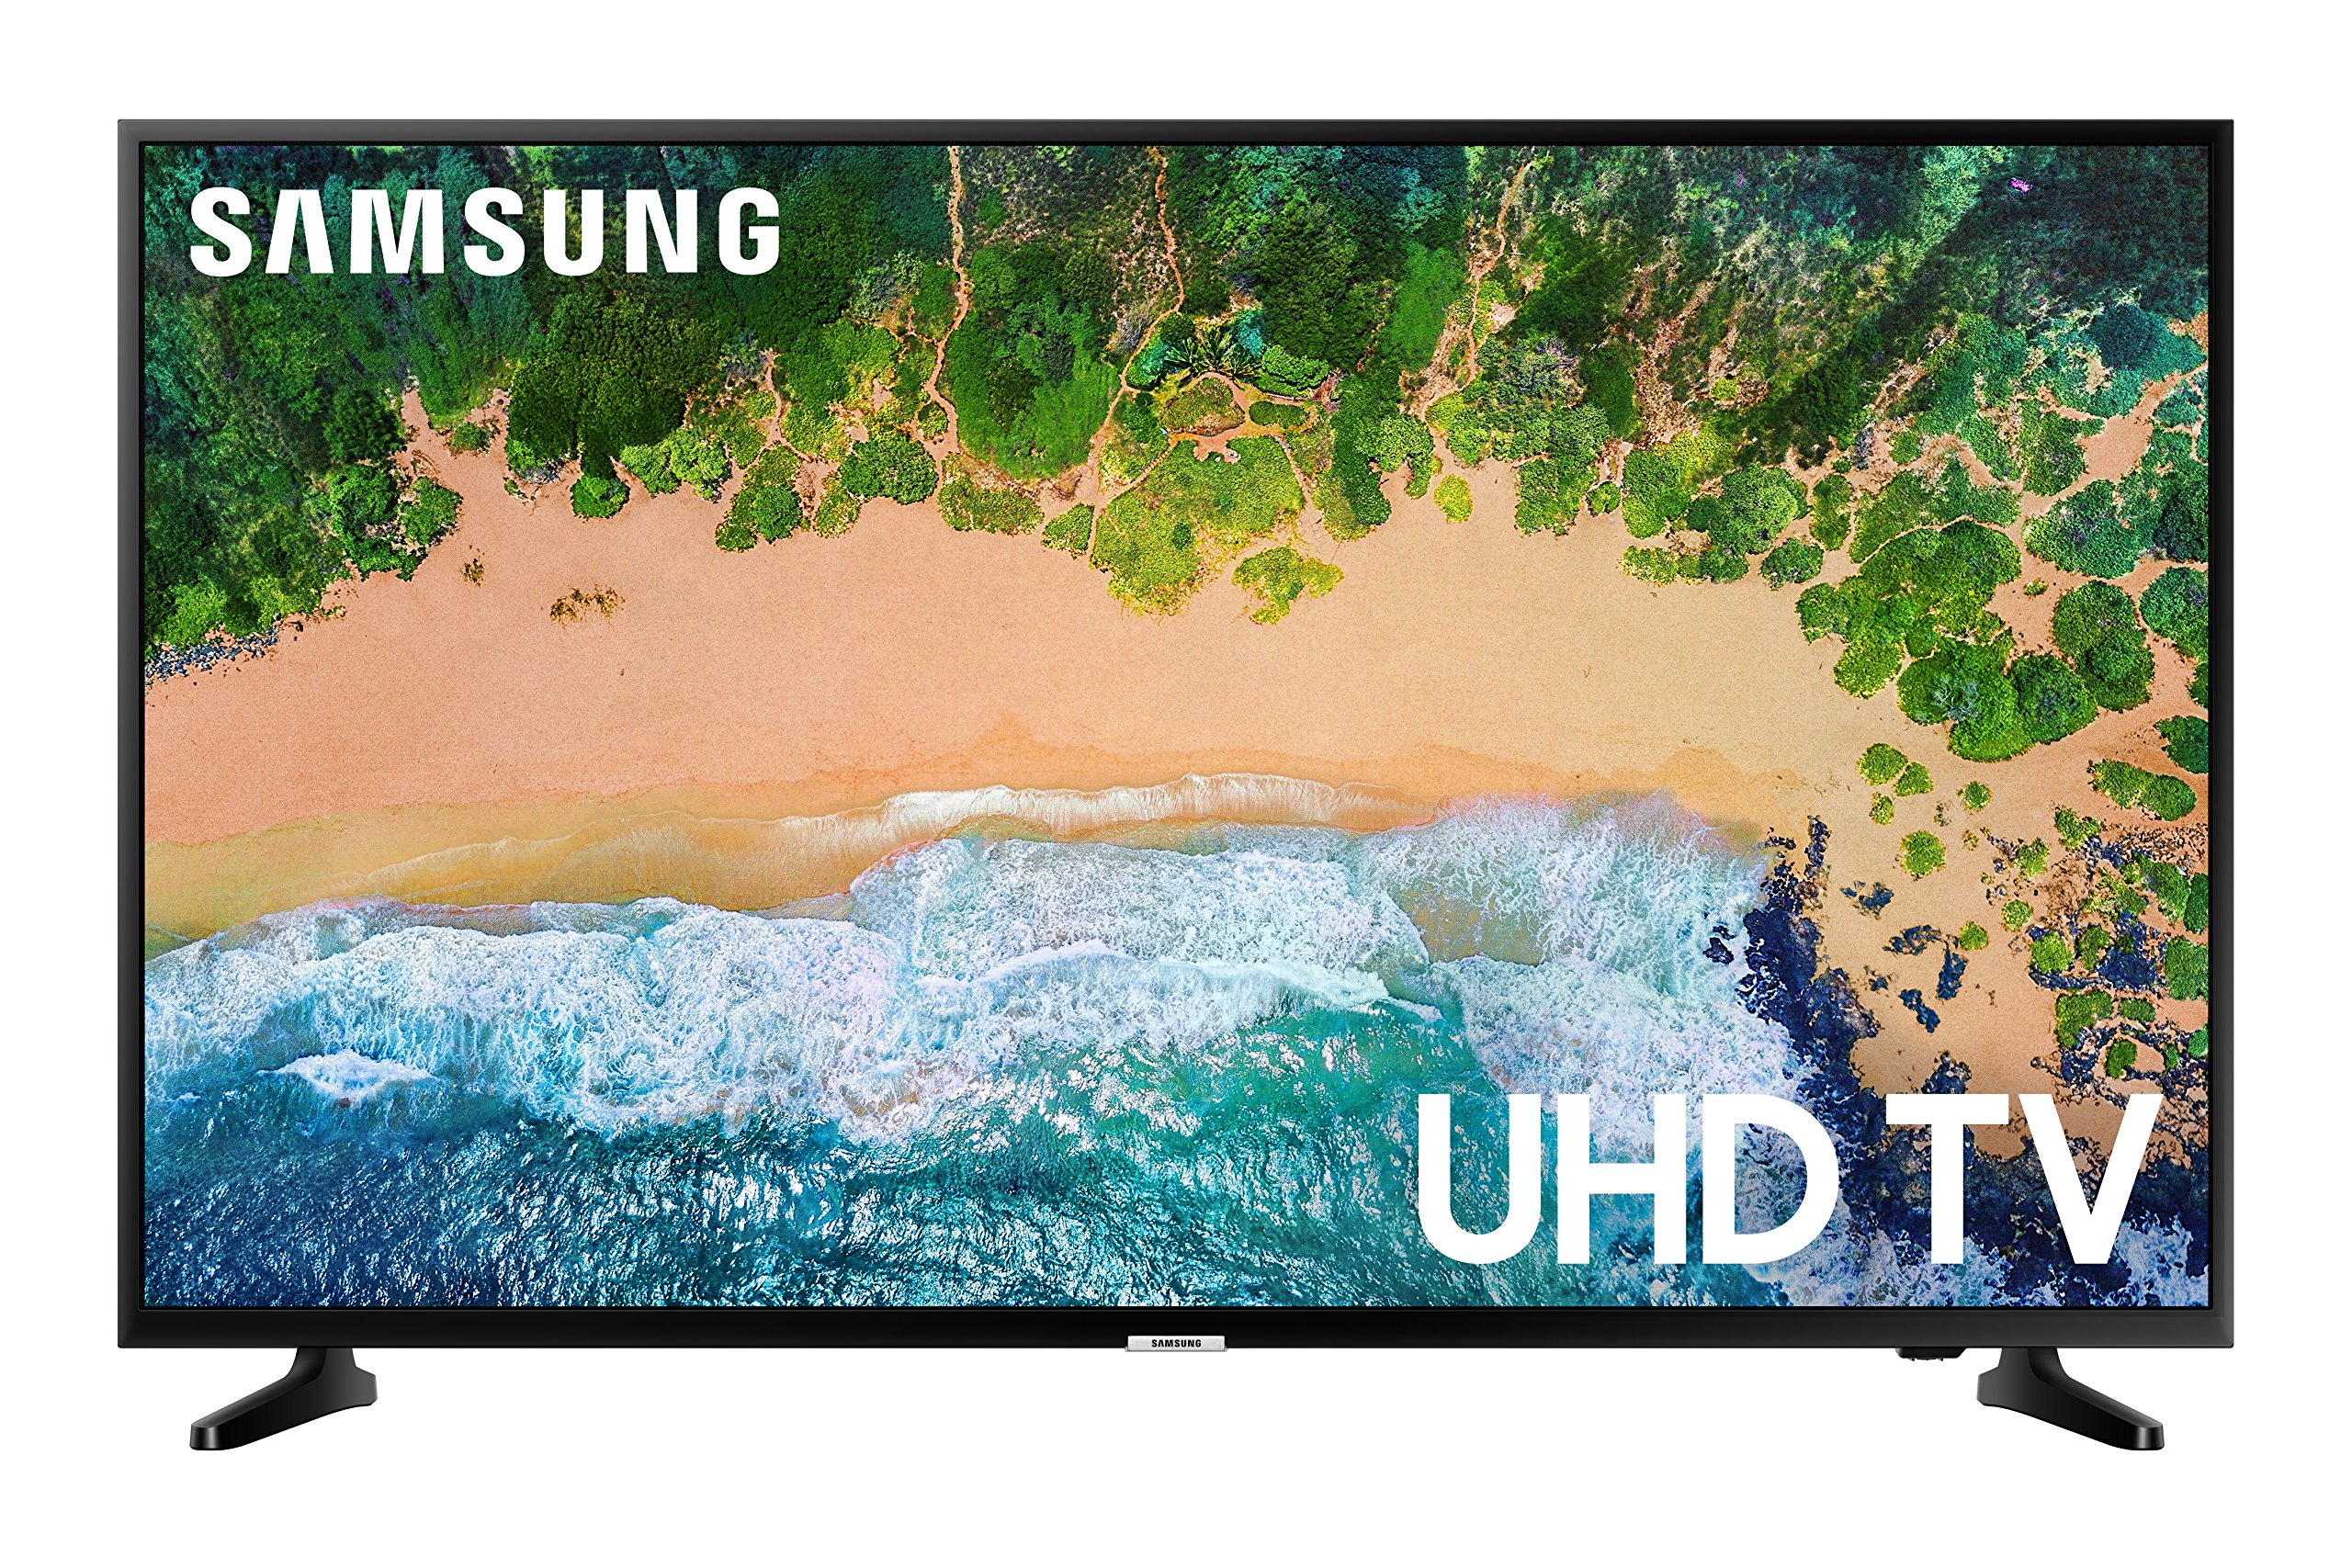 Samsung Electronics 4K Smart LED TV (2018), 43'' (UN43NU6900FXZA)